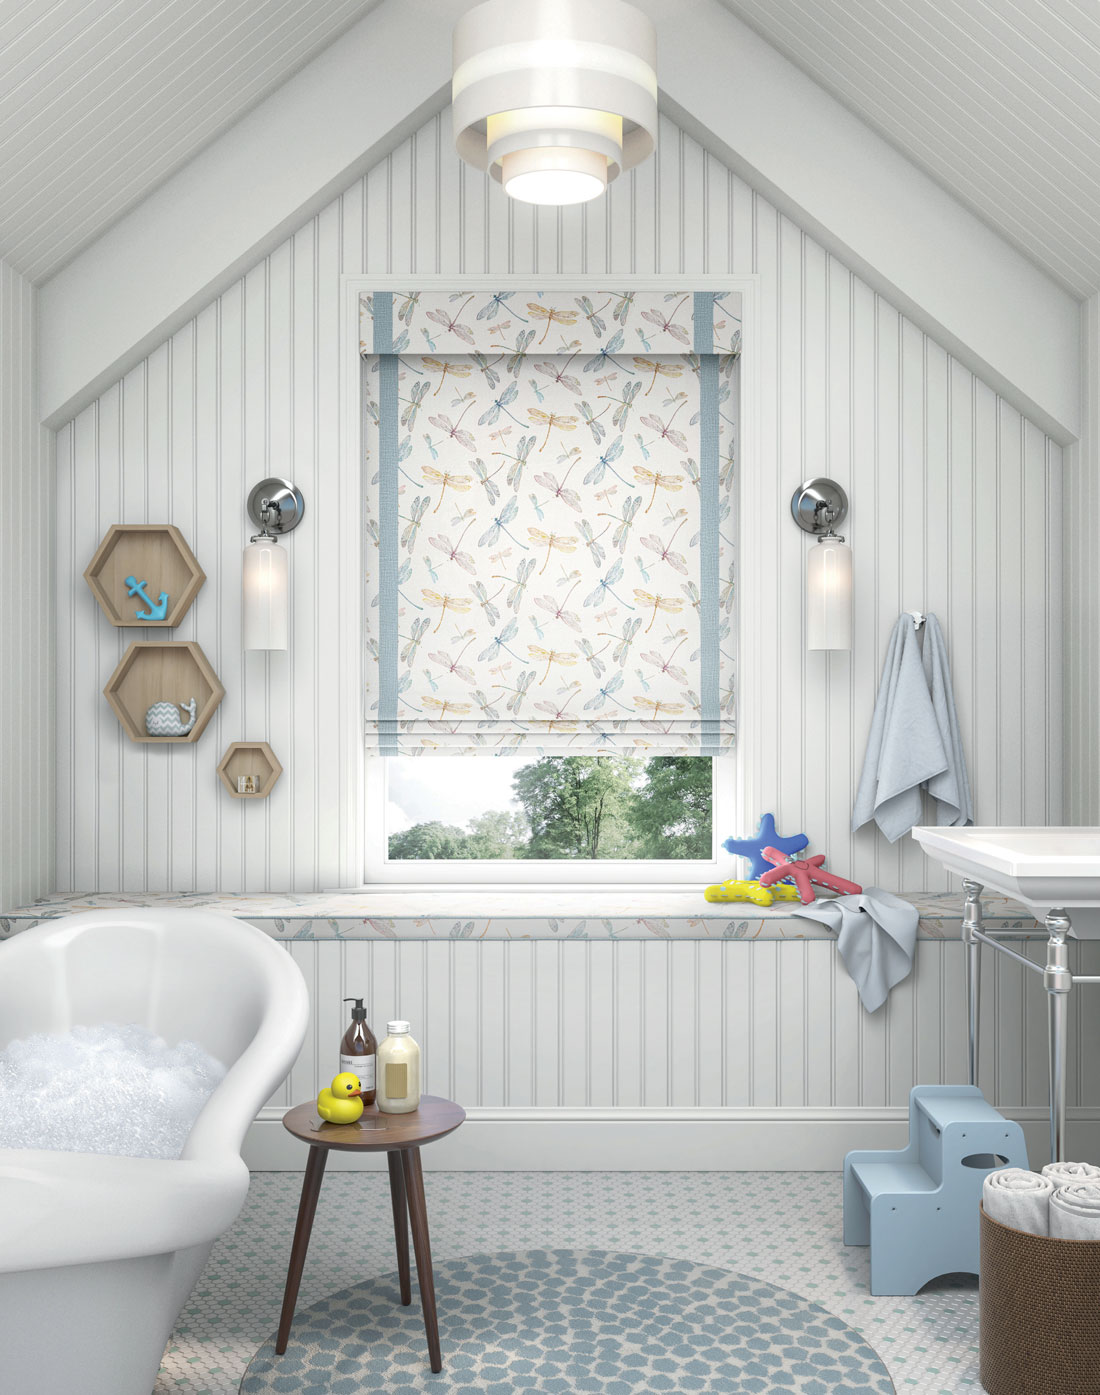 Interior Masterpieces® Fabric Shade with a playful dragonfly material and Fabric Wrapped Cornice hanging in a bathroom window with kid toys laying around and a bath tub full of suds